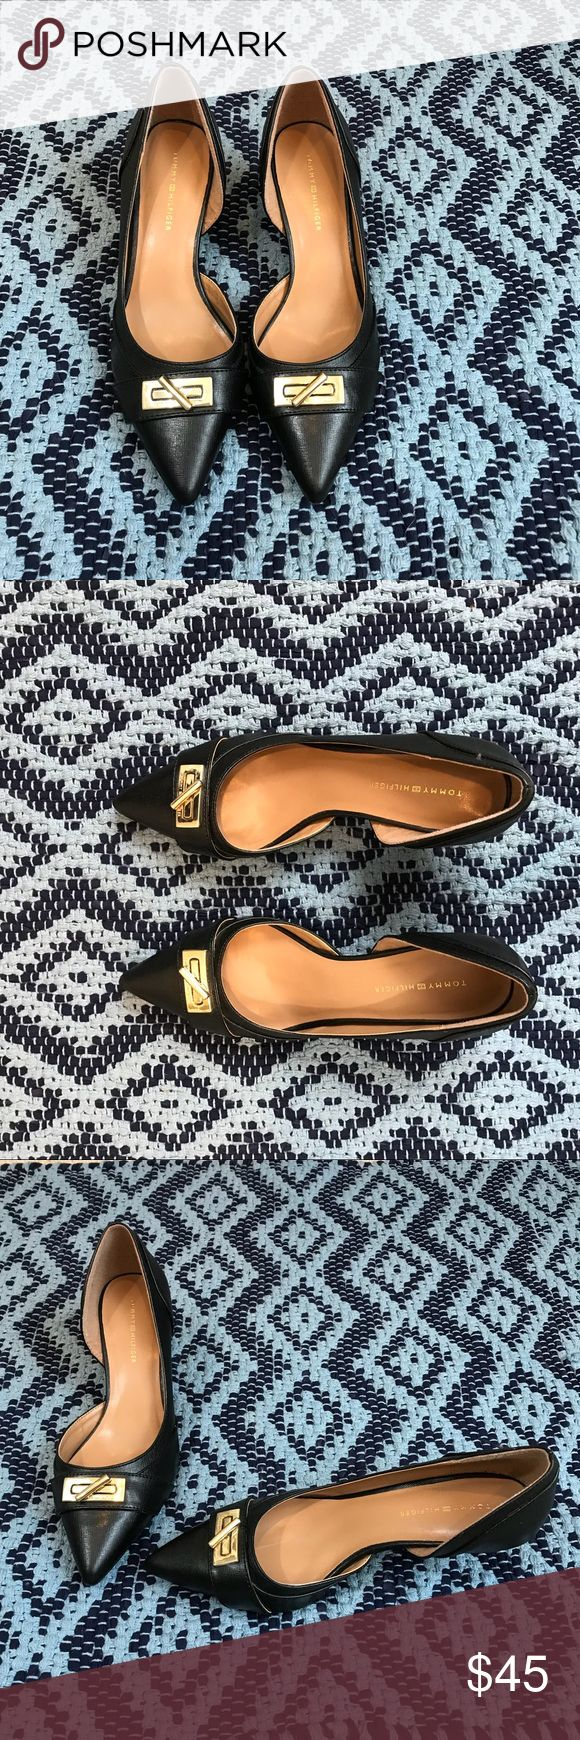 Tommy Hilfiger Black d'orsey  kitten heel heels Tommy Hilfiger Black d'orsey  kitten heels. Gold hardware detail on front top of shoe. Sophisticated and easy to wear! Tommy Hilfiger Shoes Heels